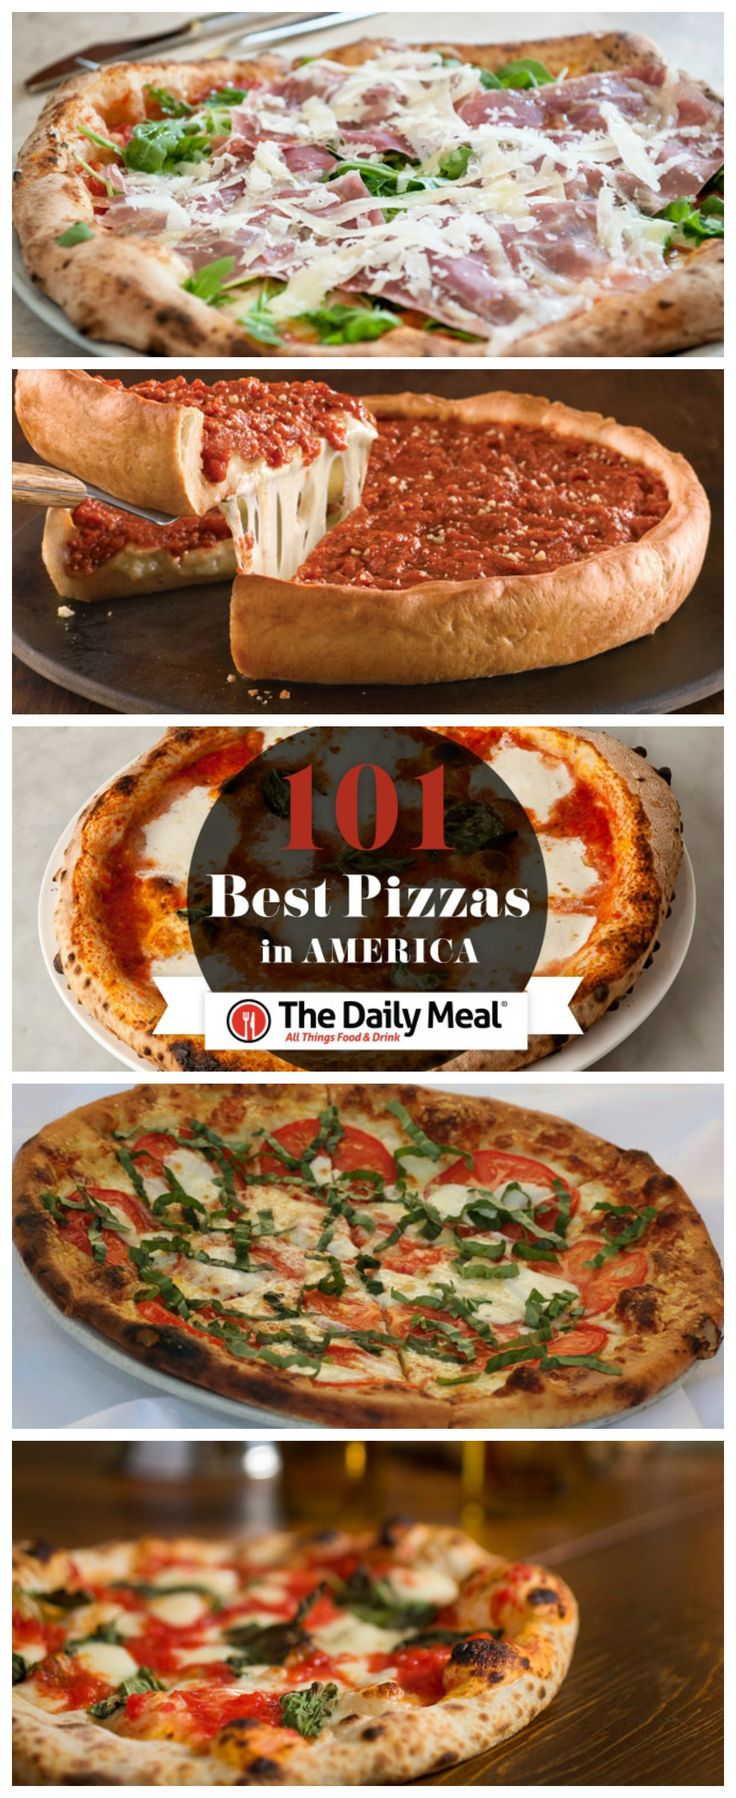 Check Out the 101 Best Pizza's in America!! http://www.thedailymeal.com/101-best-pizzas-america/10222013